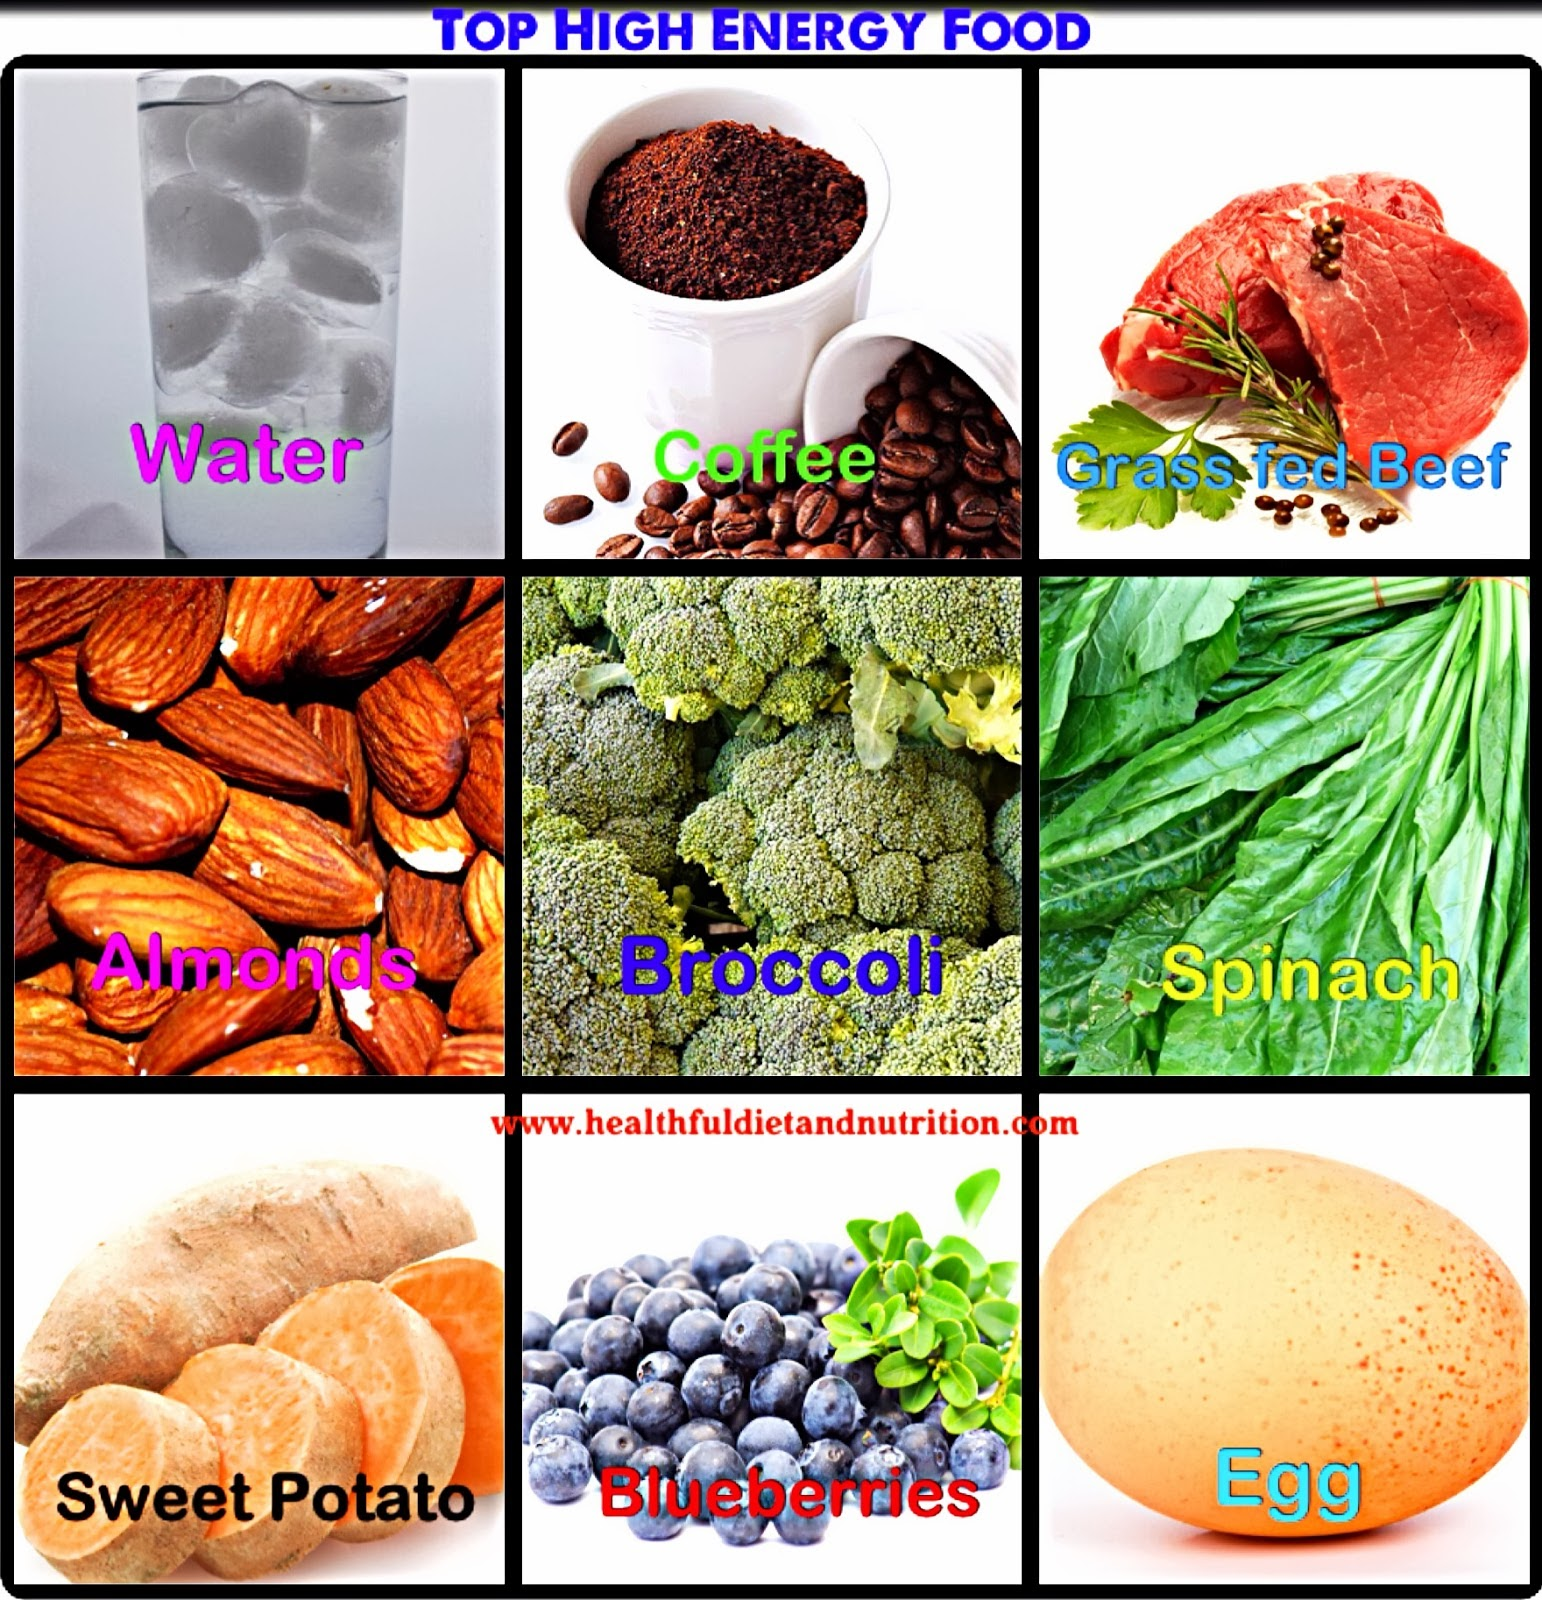 Top High Energy Foods